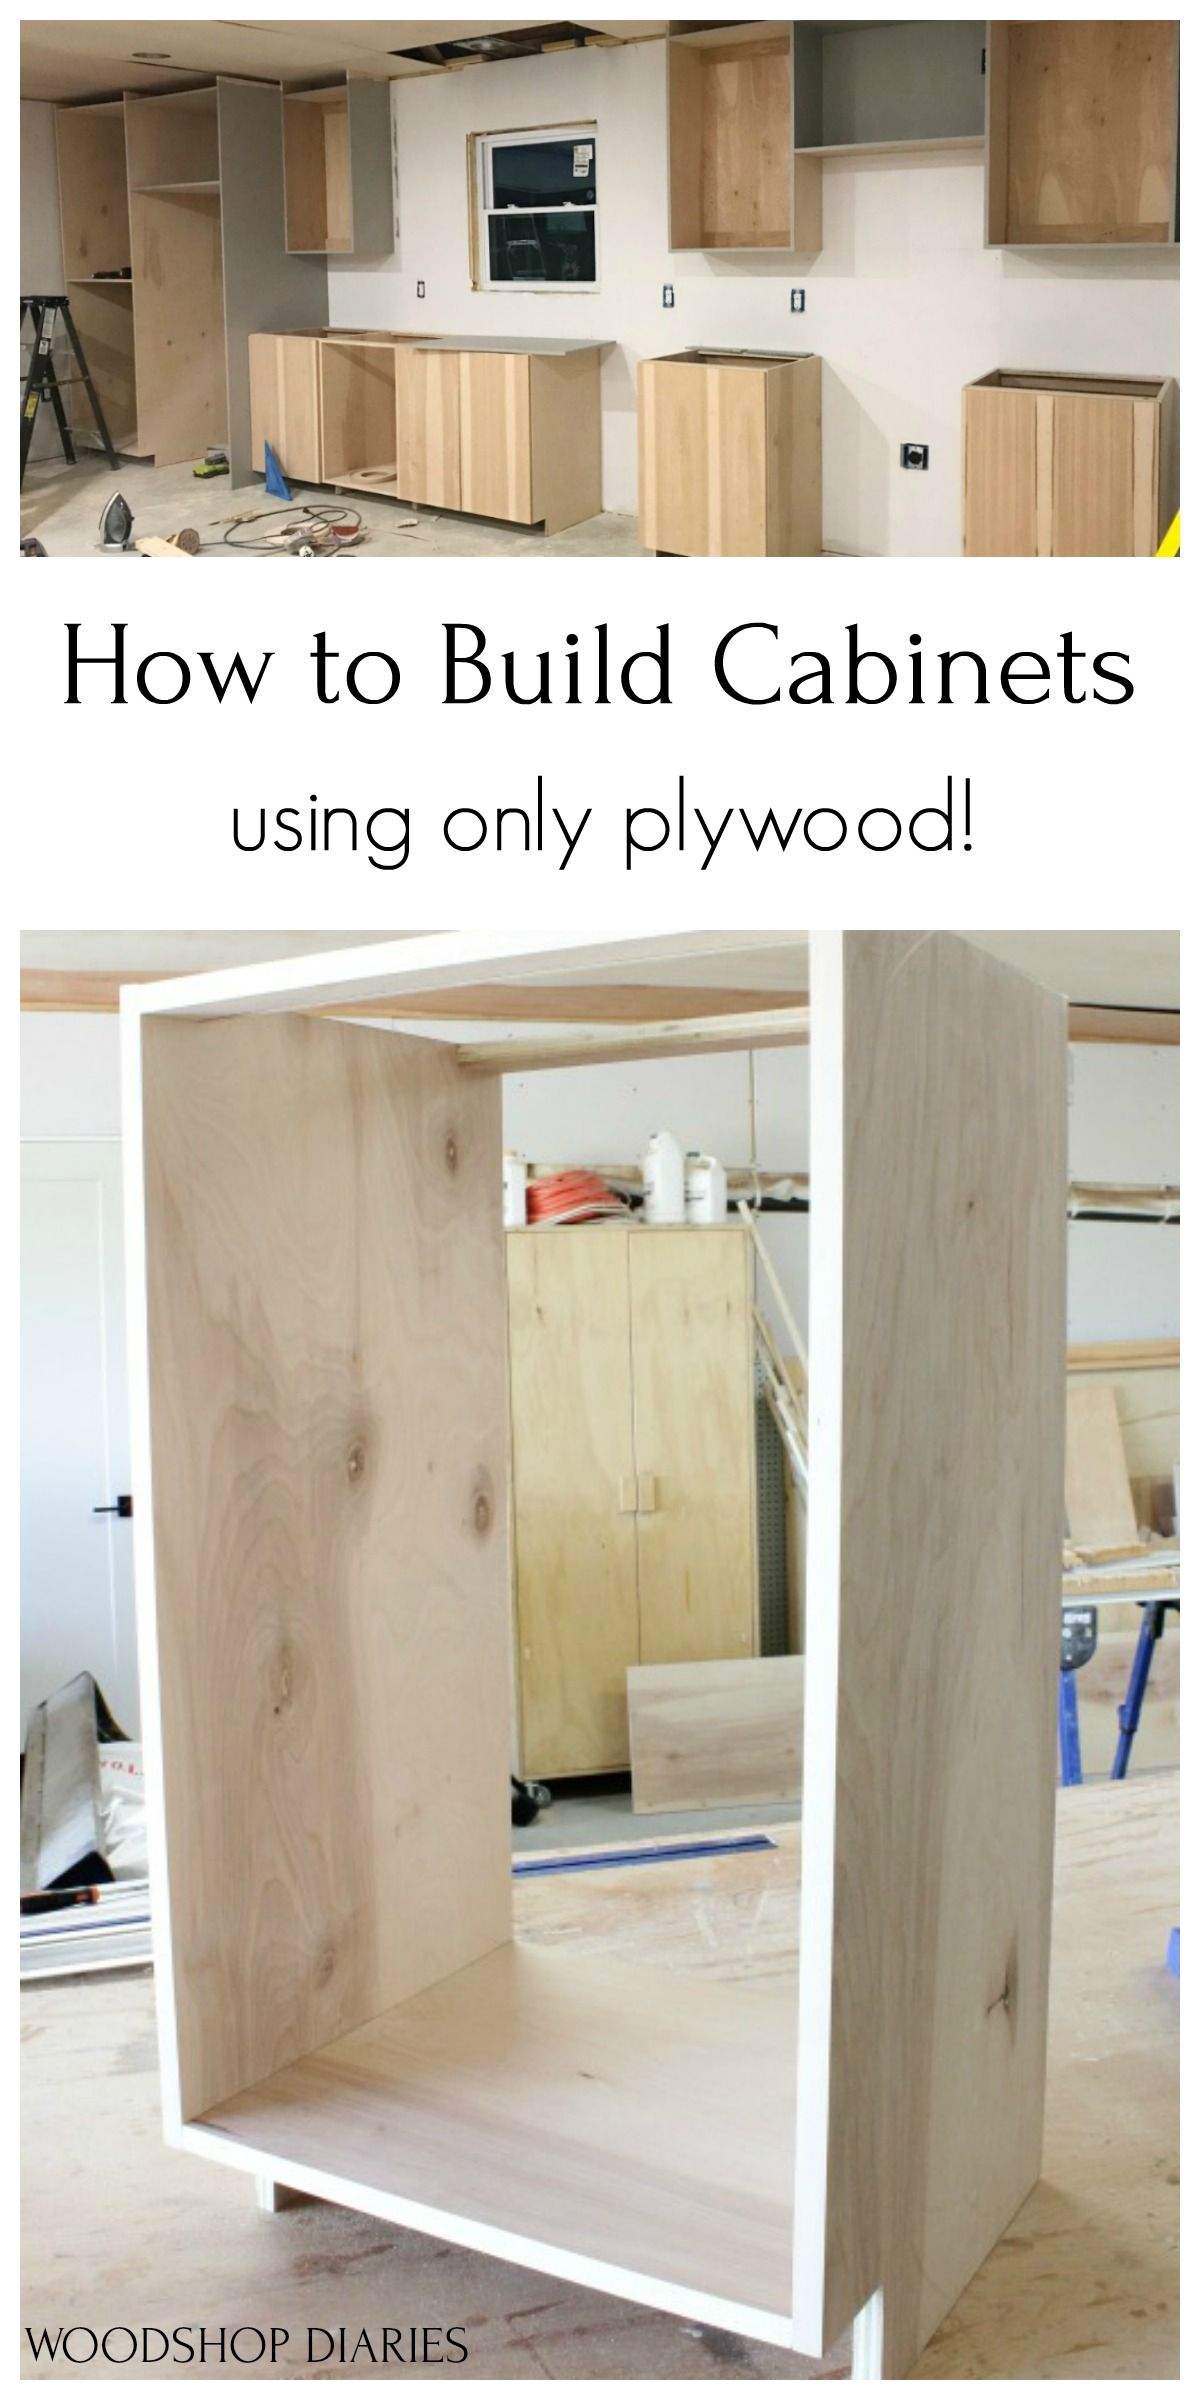 Diy Kitchen Cabinets Made From Only Plywood In 2020 Diy Cabinets Build Diy Kitchen Cabinets Build Woodworking Plans Kitchen